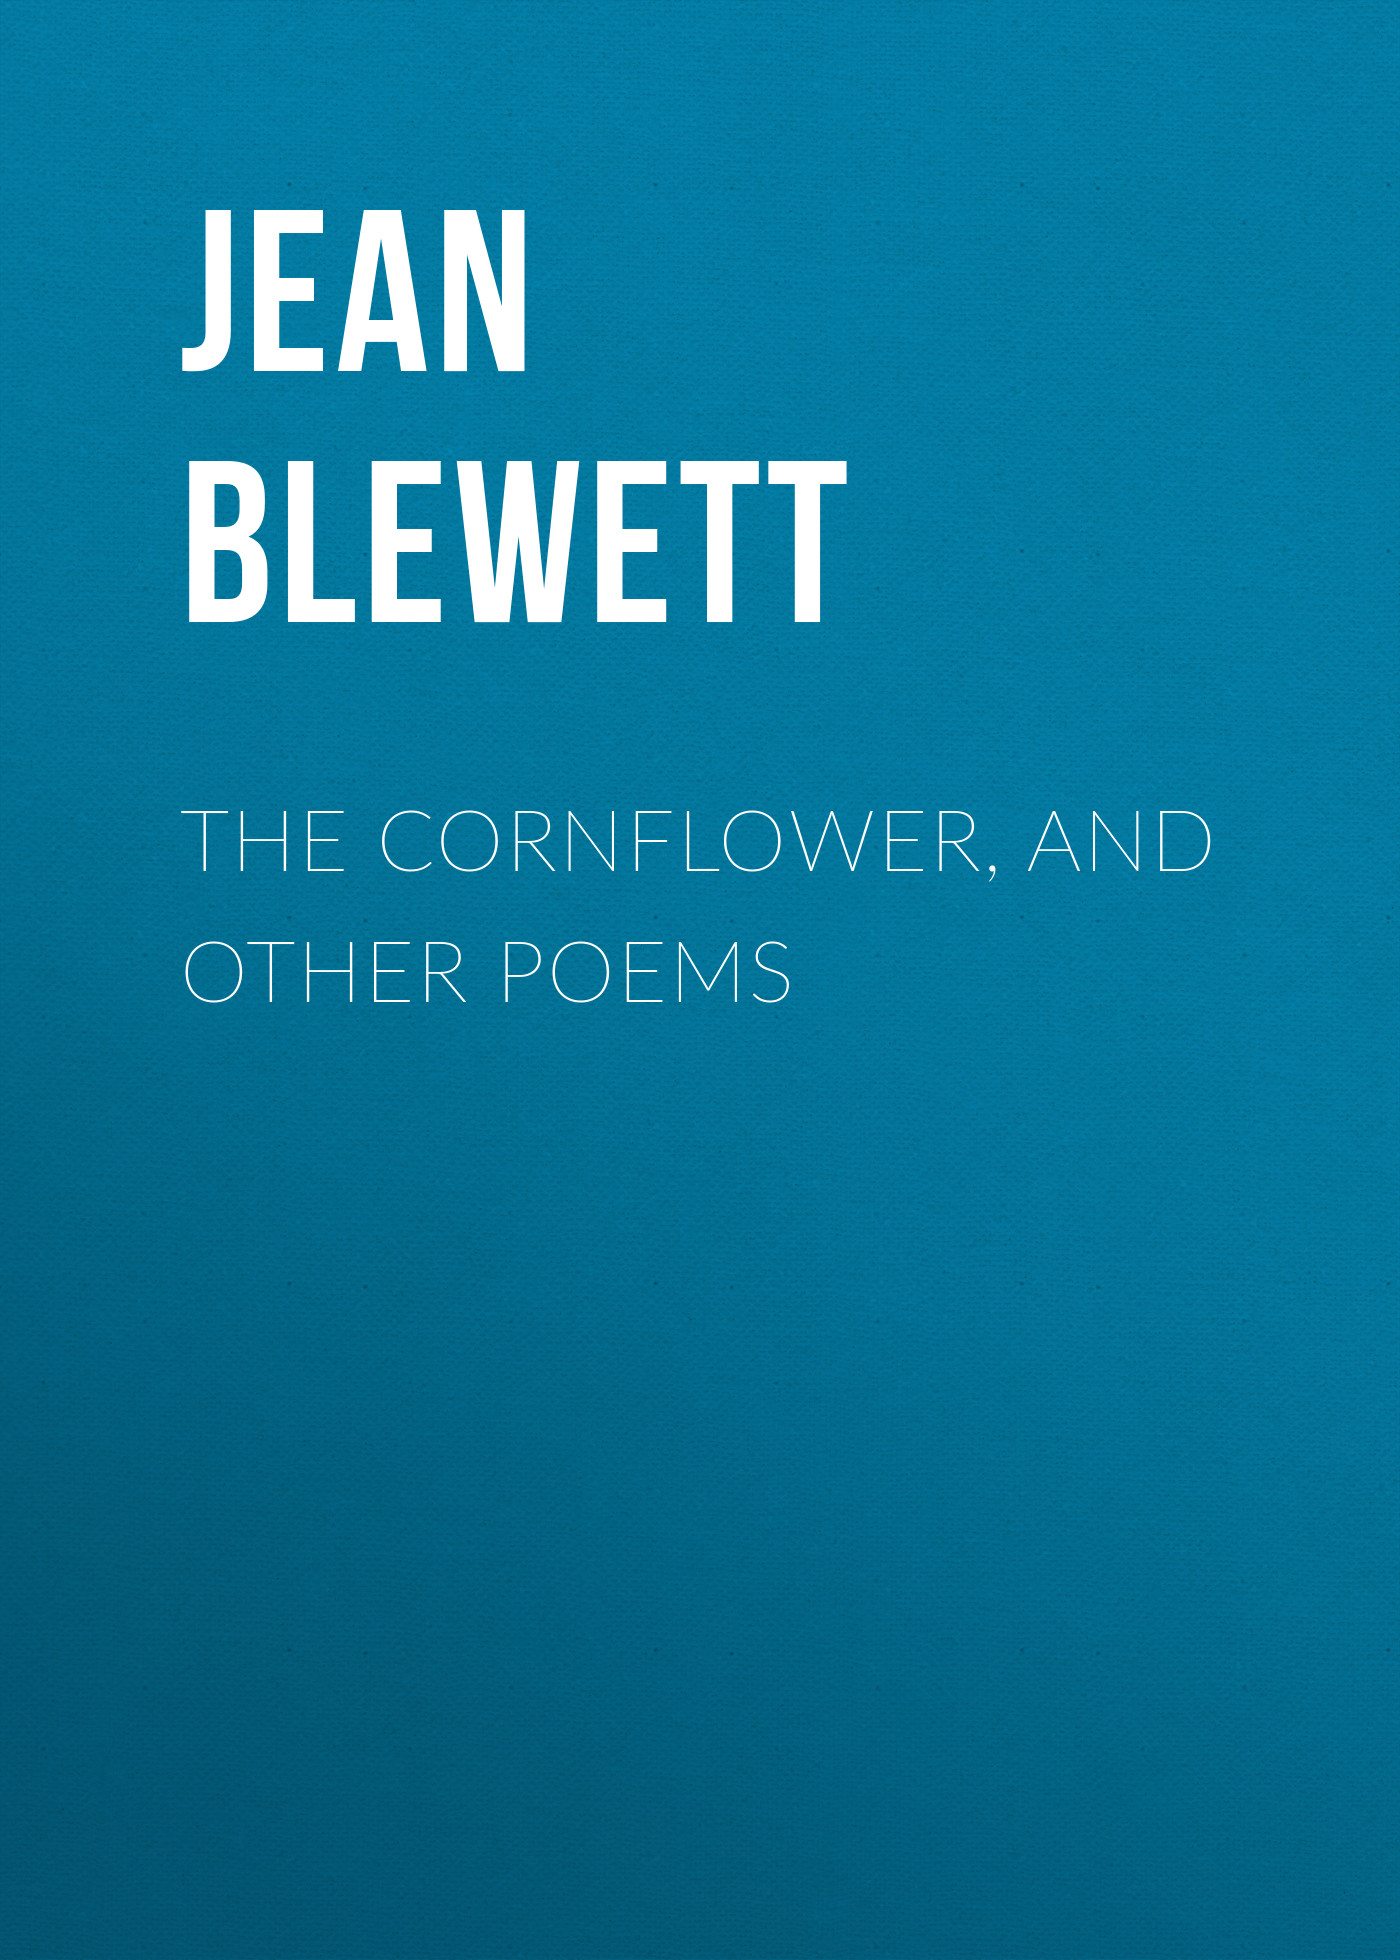 Jean Blewett The Cornflower, and Other Poems waste land and other poems